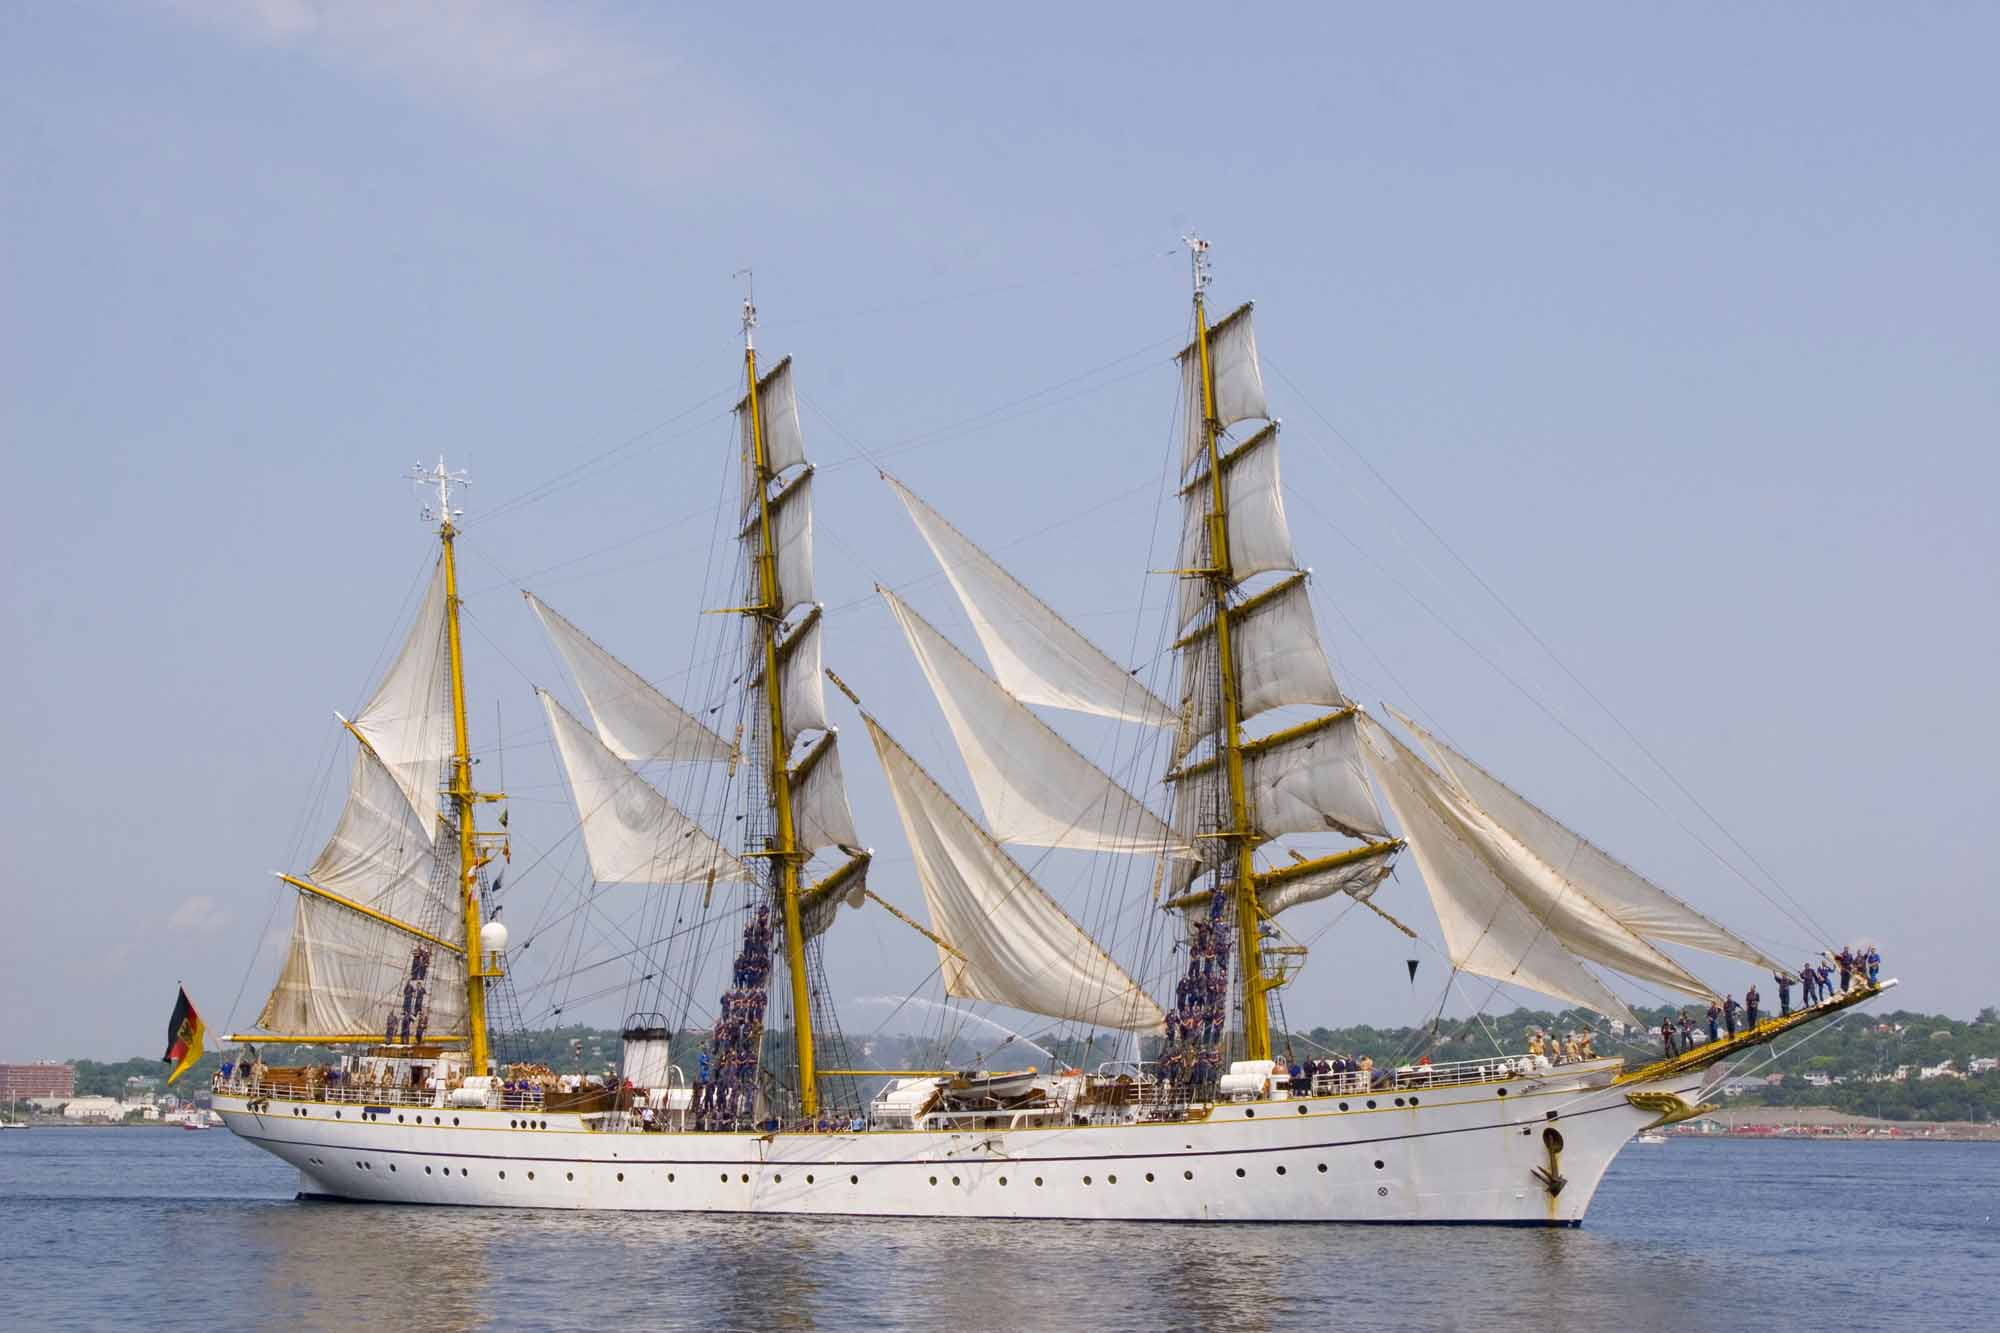 Nova Scotia Tall Ships